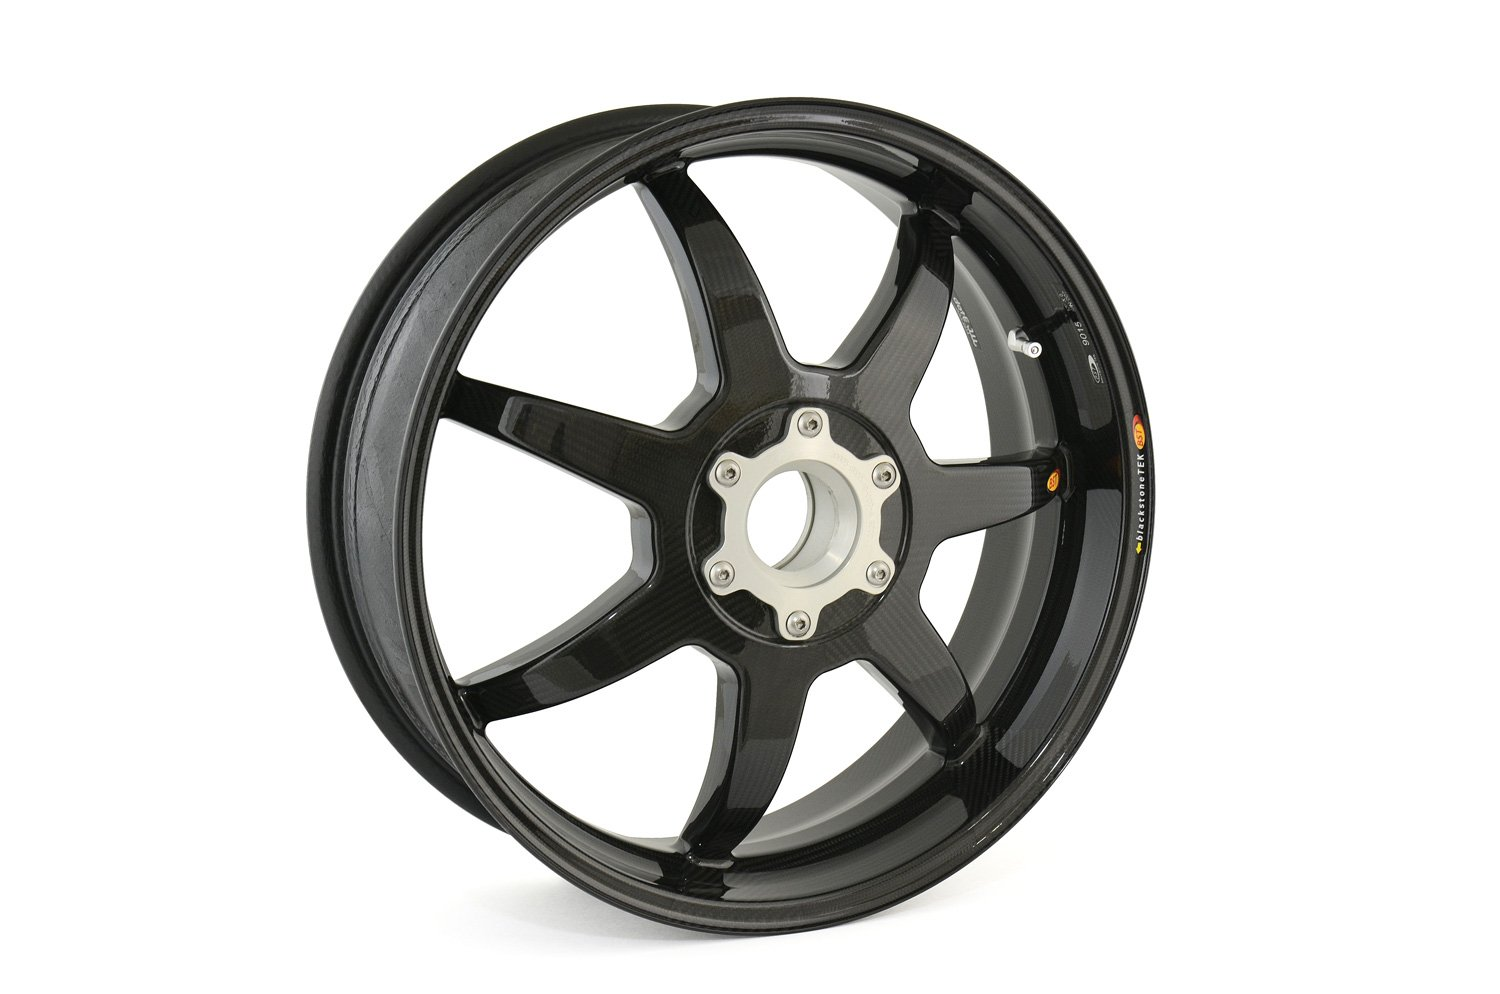 BST Carbon Fiber Rear Motorcycle Wheel(KTM 1290 Super Duke)